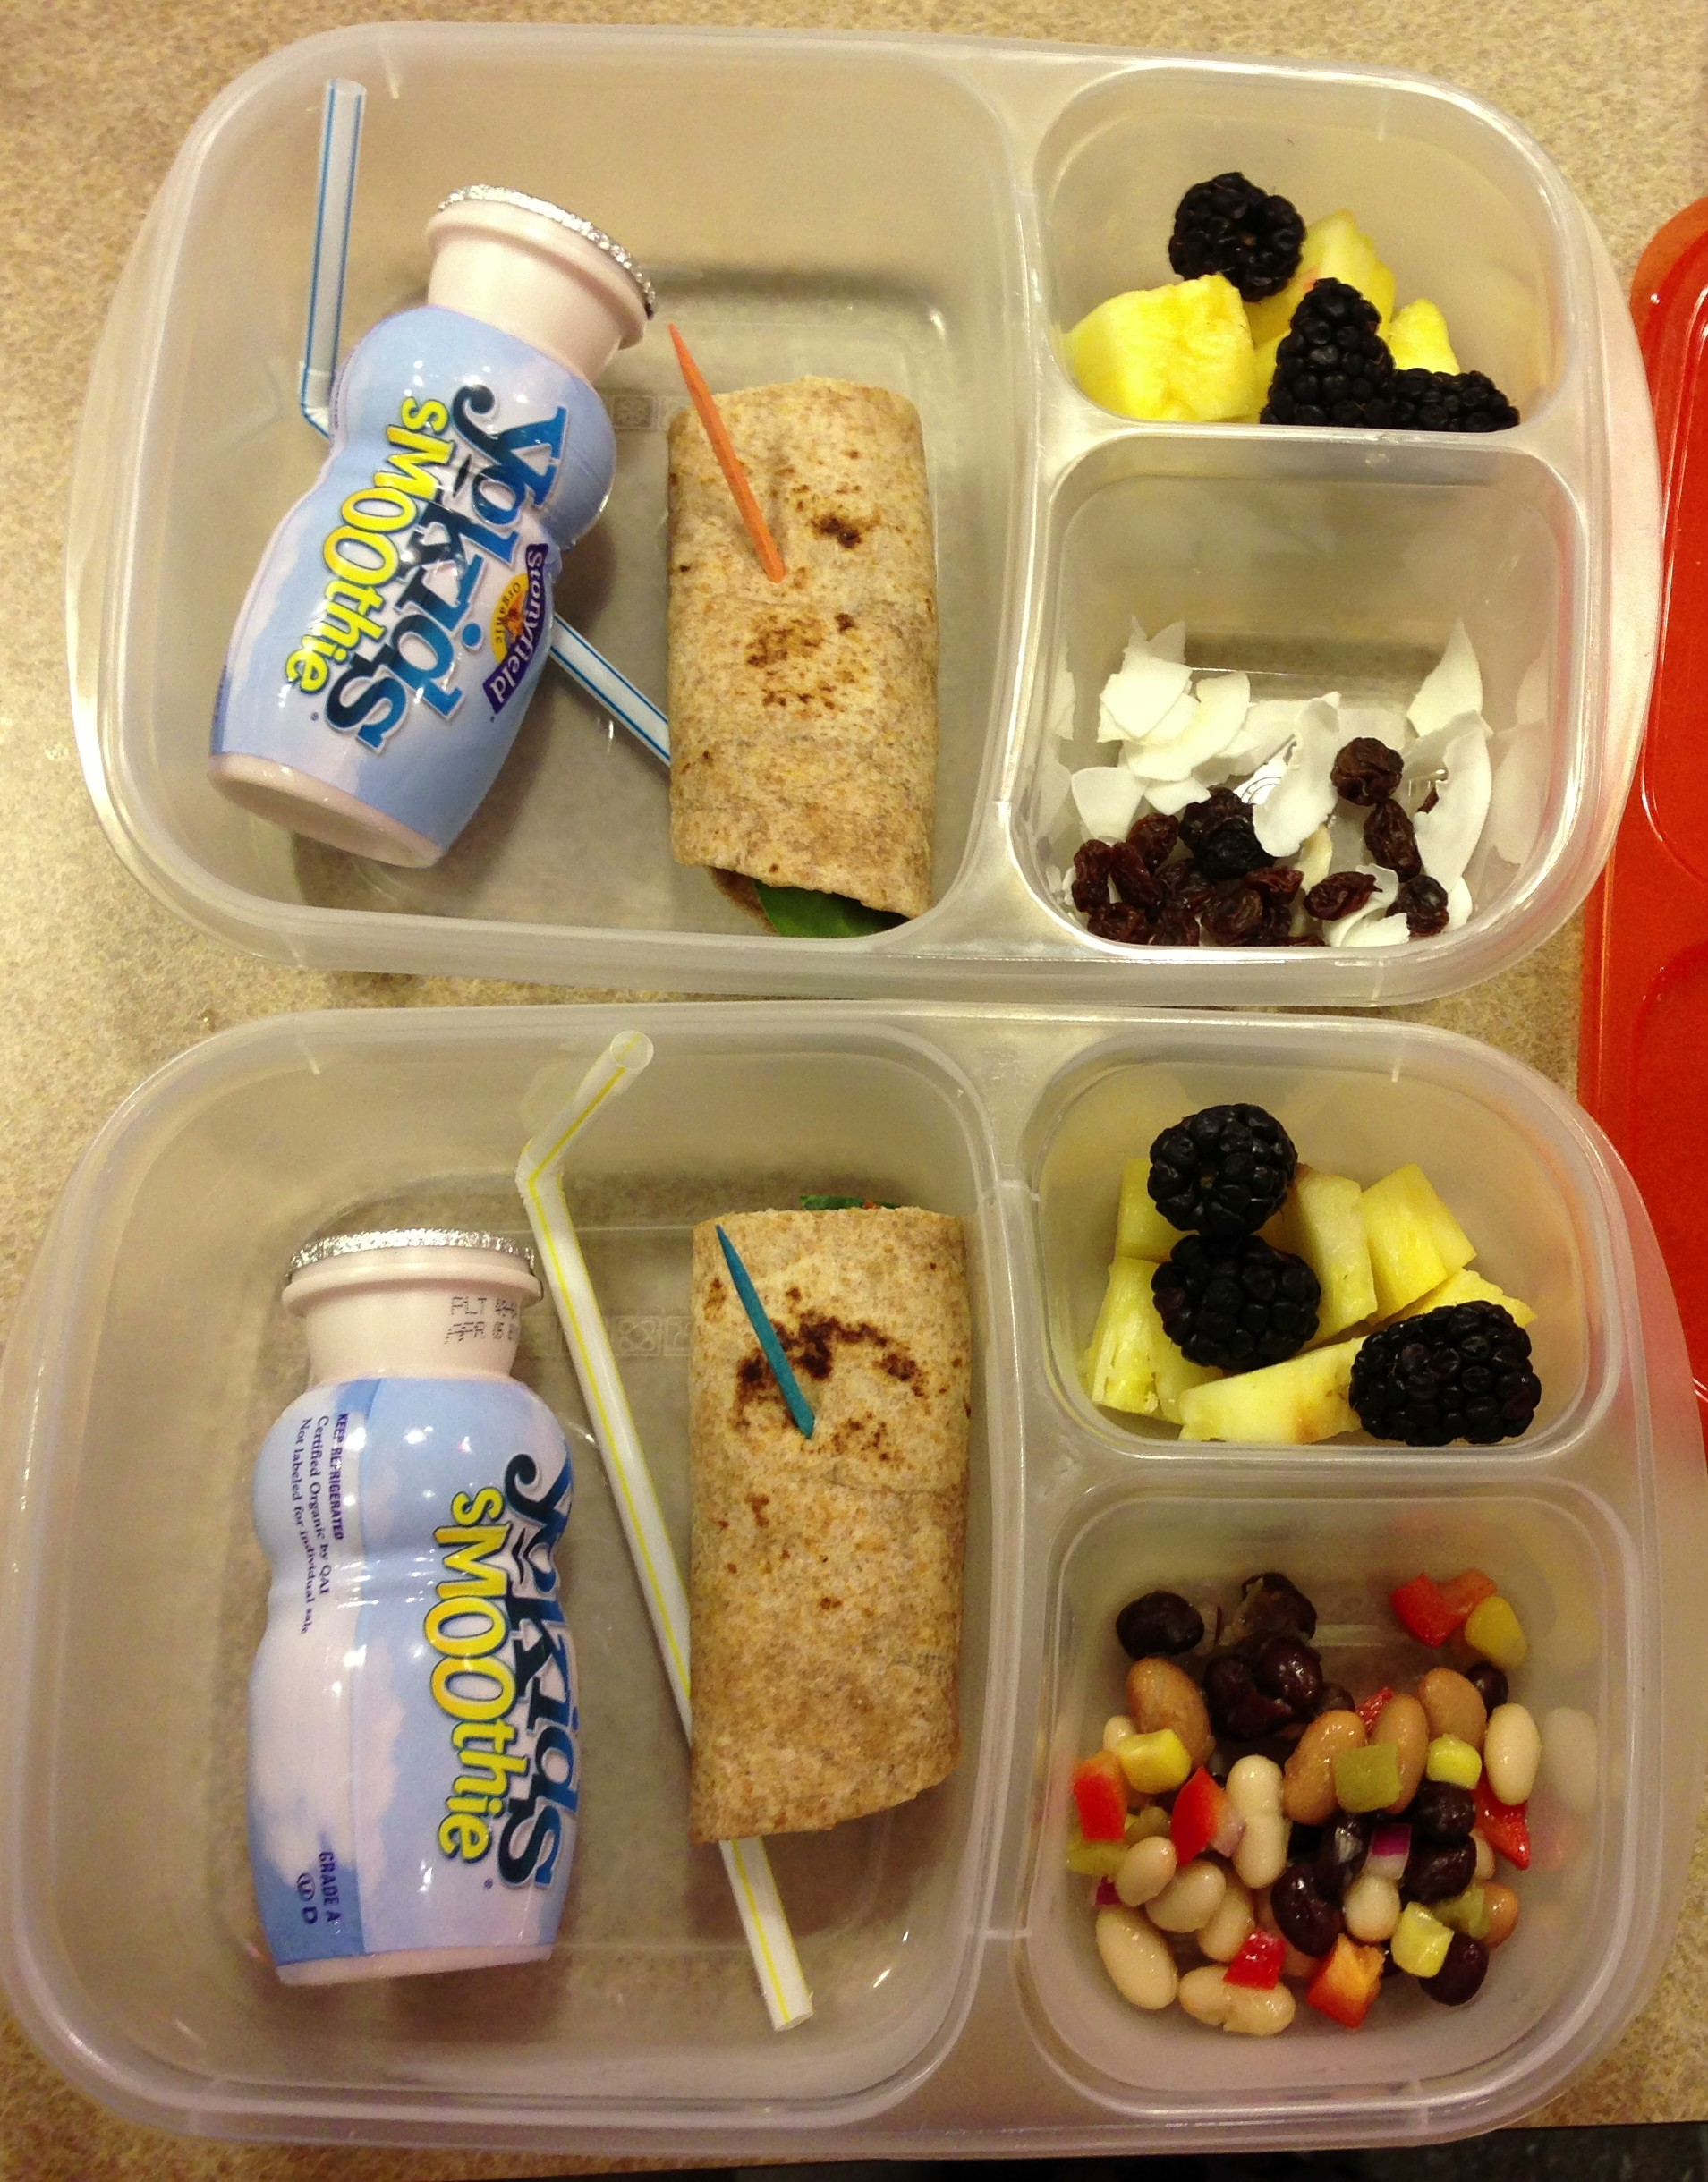 Today's lunch: Hummus, spinach, cheese and tomato in a whole wheat wrap, pineapple and blackberries, Laynie has texas caviar and Liam has raisins and coconut flakes, yogurt smoothie for a treat